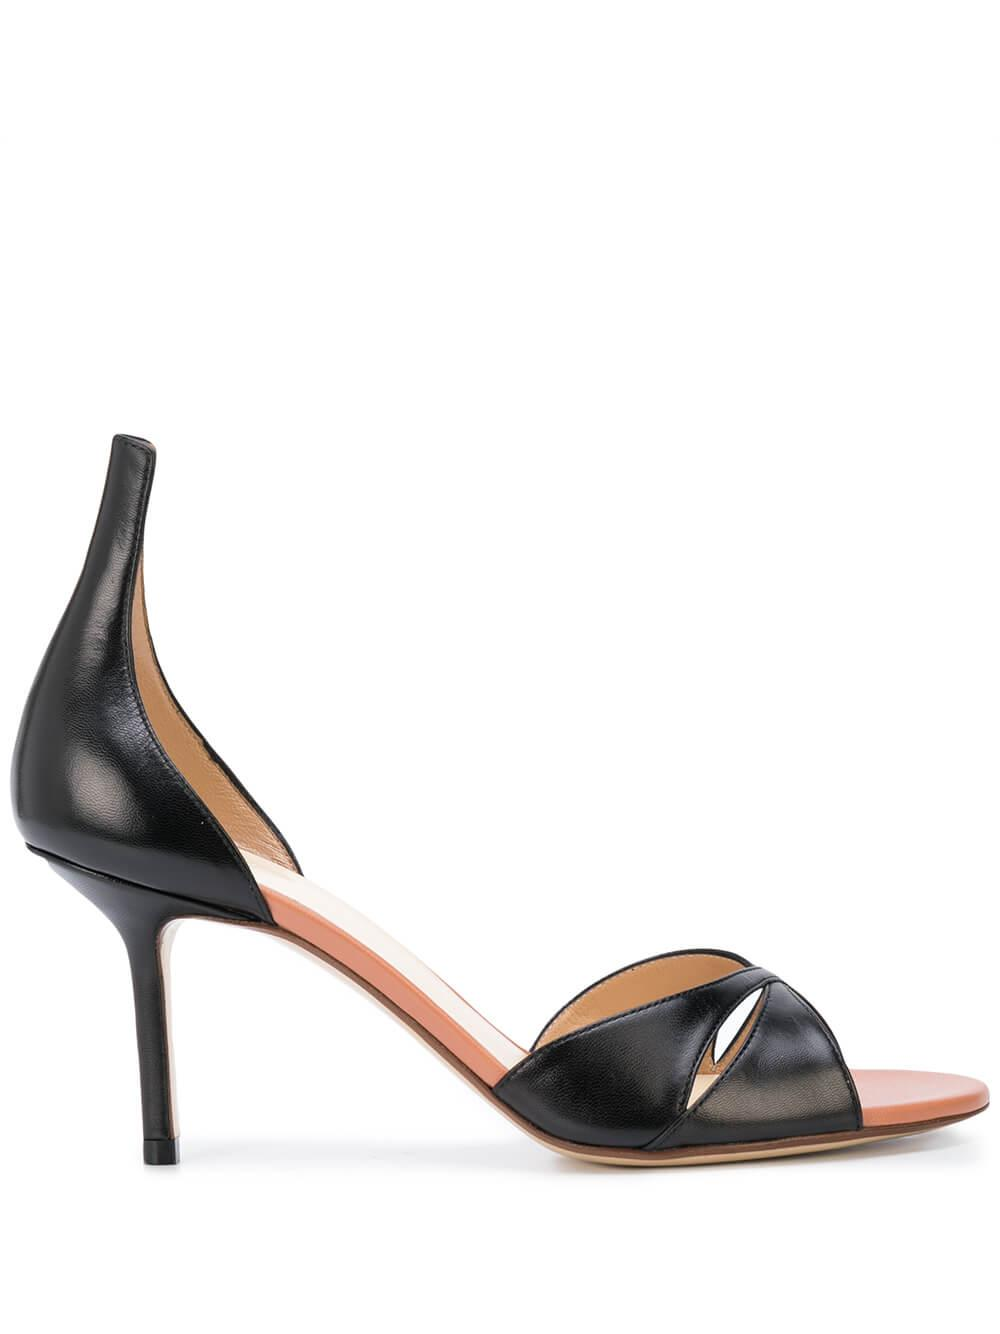 Leather 75mm Criss Cross High Heel Sandal